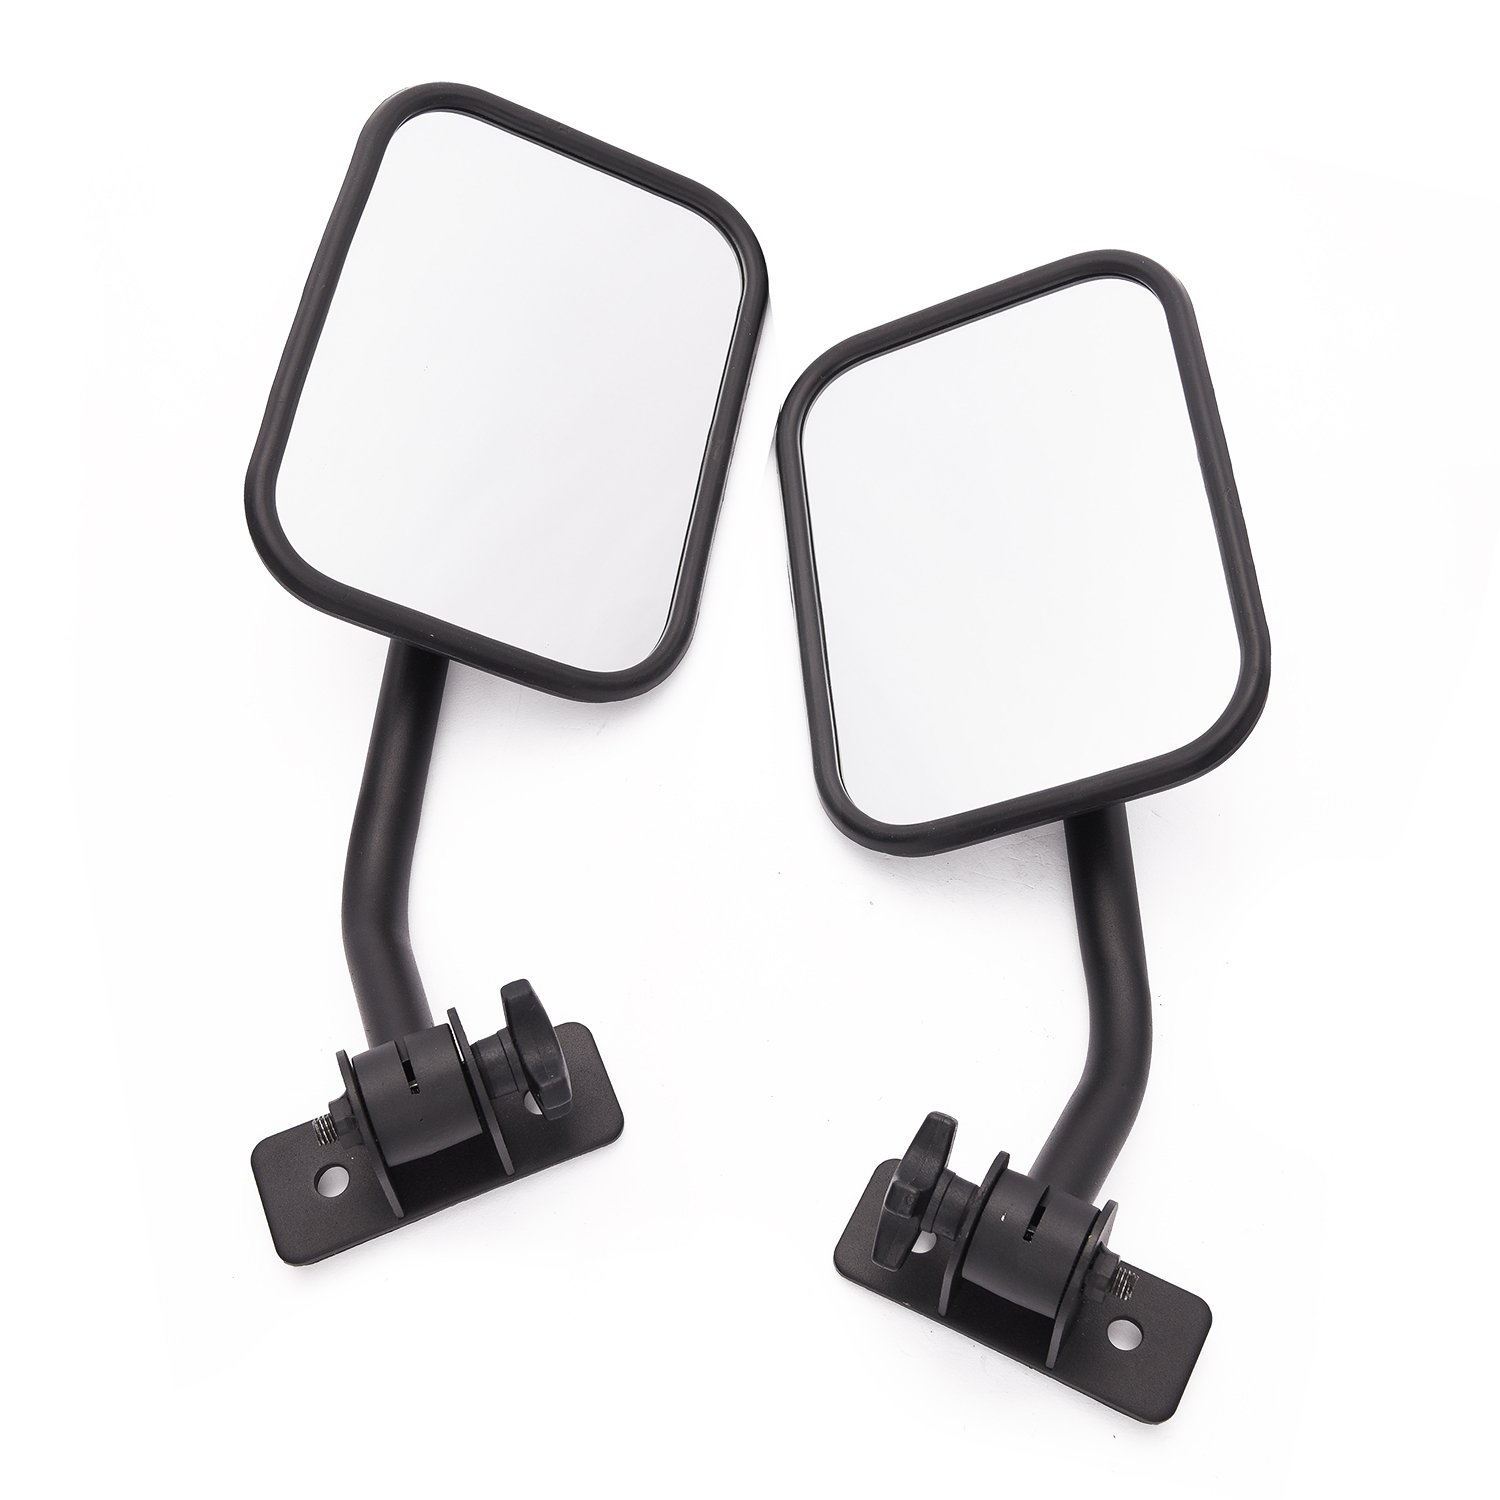 MICTUNING Side Mirrors with Anti-Slip Mount Bracket, Adjustable for 1997-2018 Jeep Wrangler TJ JK LJ - 1 Pair, Textured Black